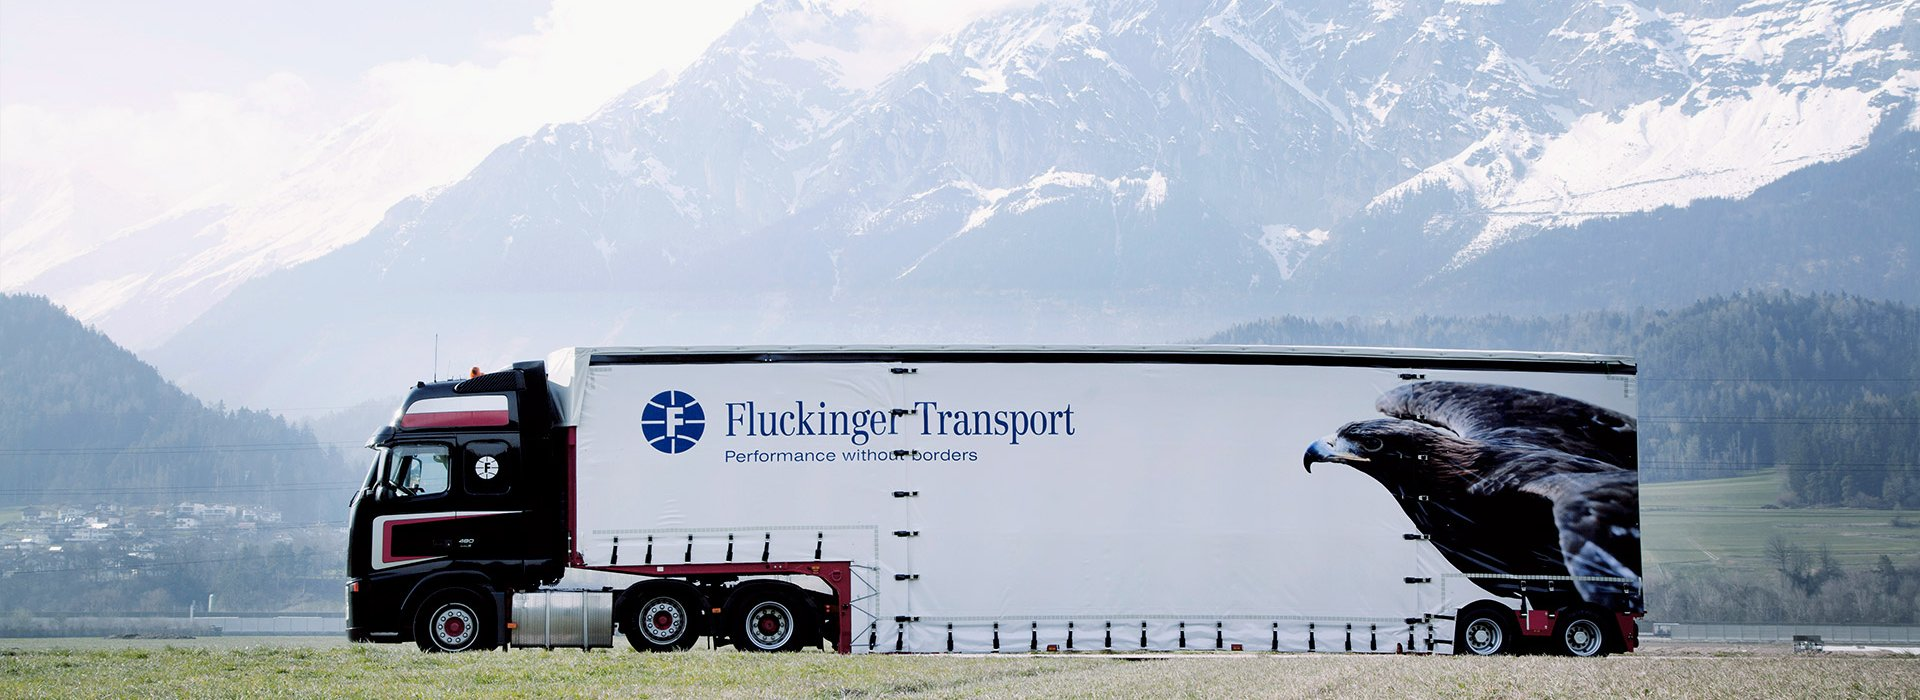 Fluckinger Transport truck in Tirol